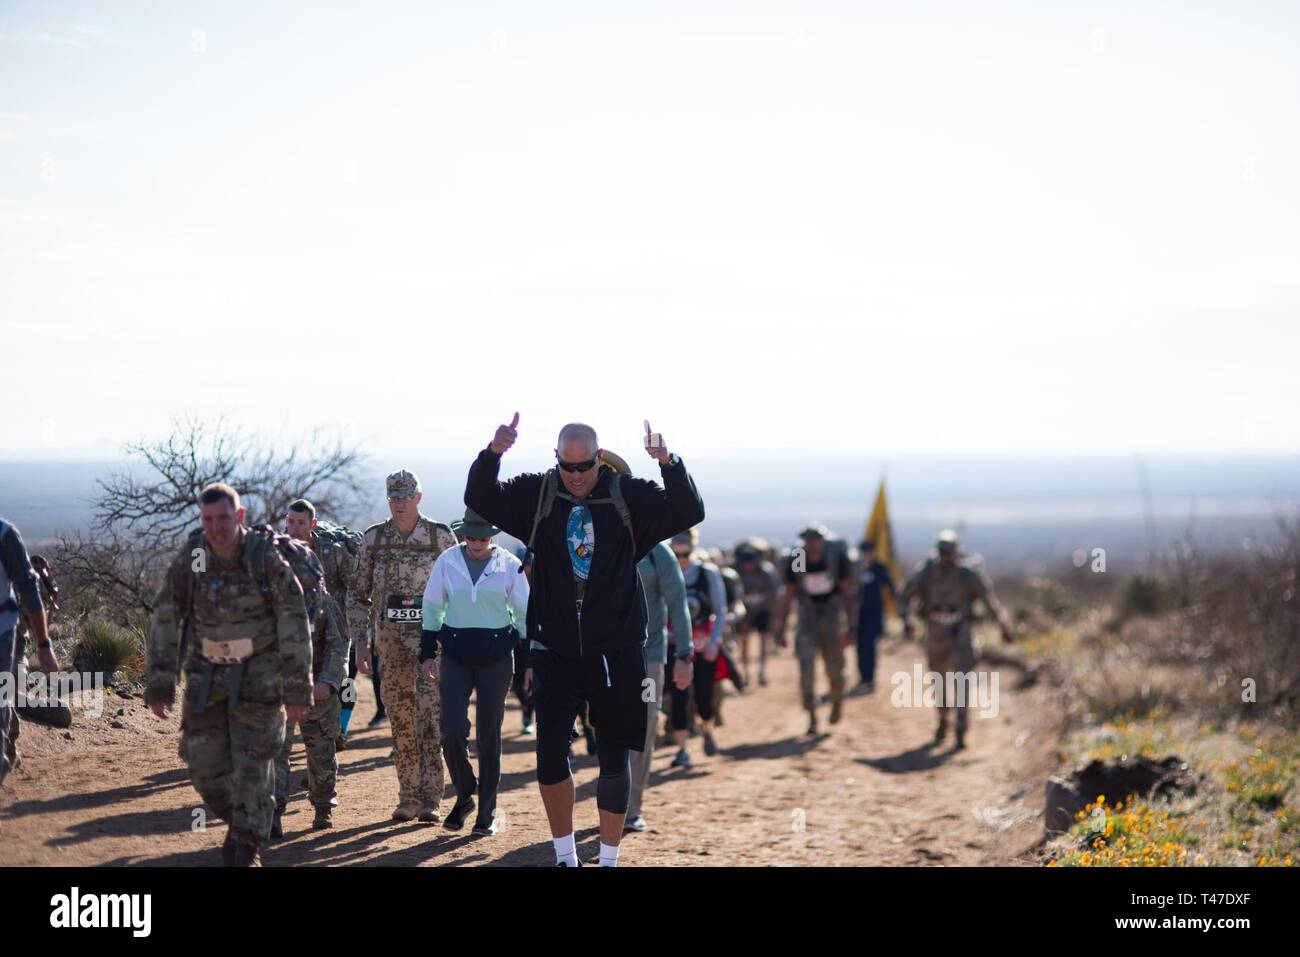 Maj. Gen. Michael Thompson, adjutant general for Oklahoma, marches alongside Oklahoma National Guard members from around the state, joining more than 8,600 people from around the world during the 30th annual Bataan Memorial Death March, Sunday. The March, established in 1989, honors the heroic service members who defended the Philippine Islands during World War II, sacrificing their freedom, health and, in many cases, their lives. - Stock Image